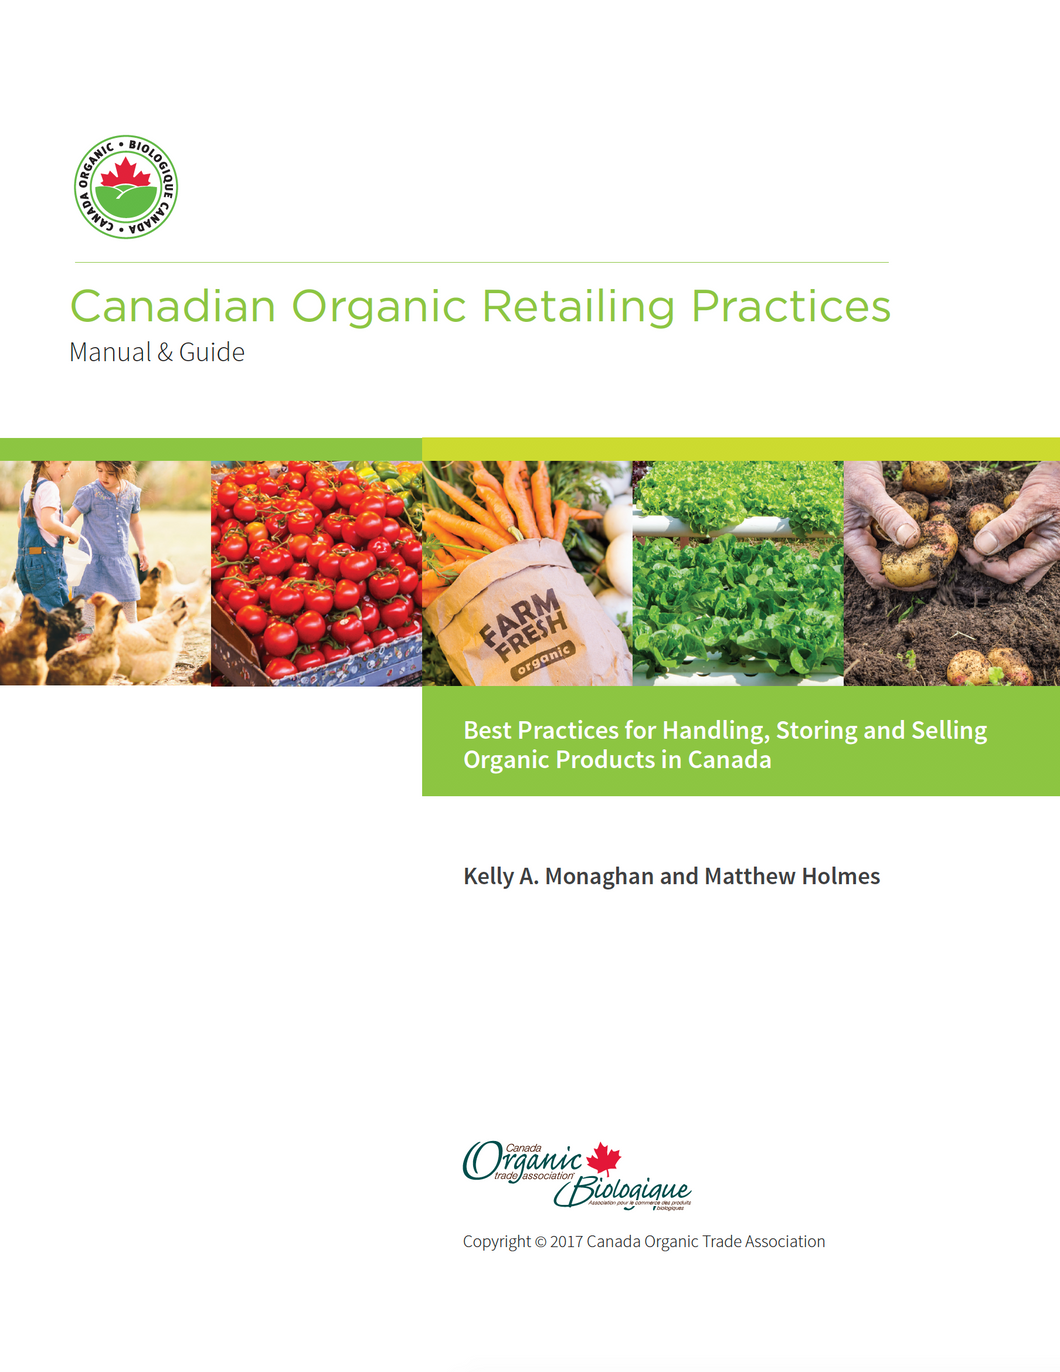 Canadian Organic Retailing Practices Manual & Guide